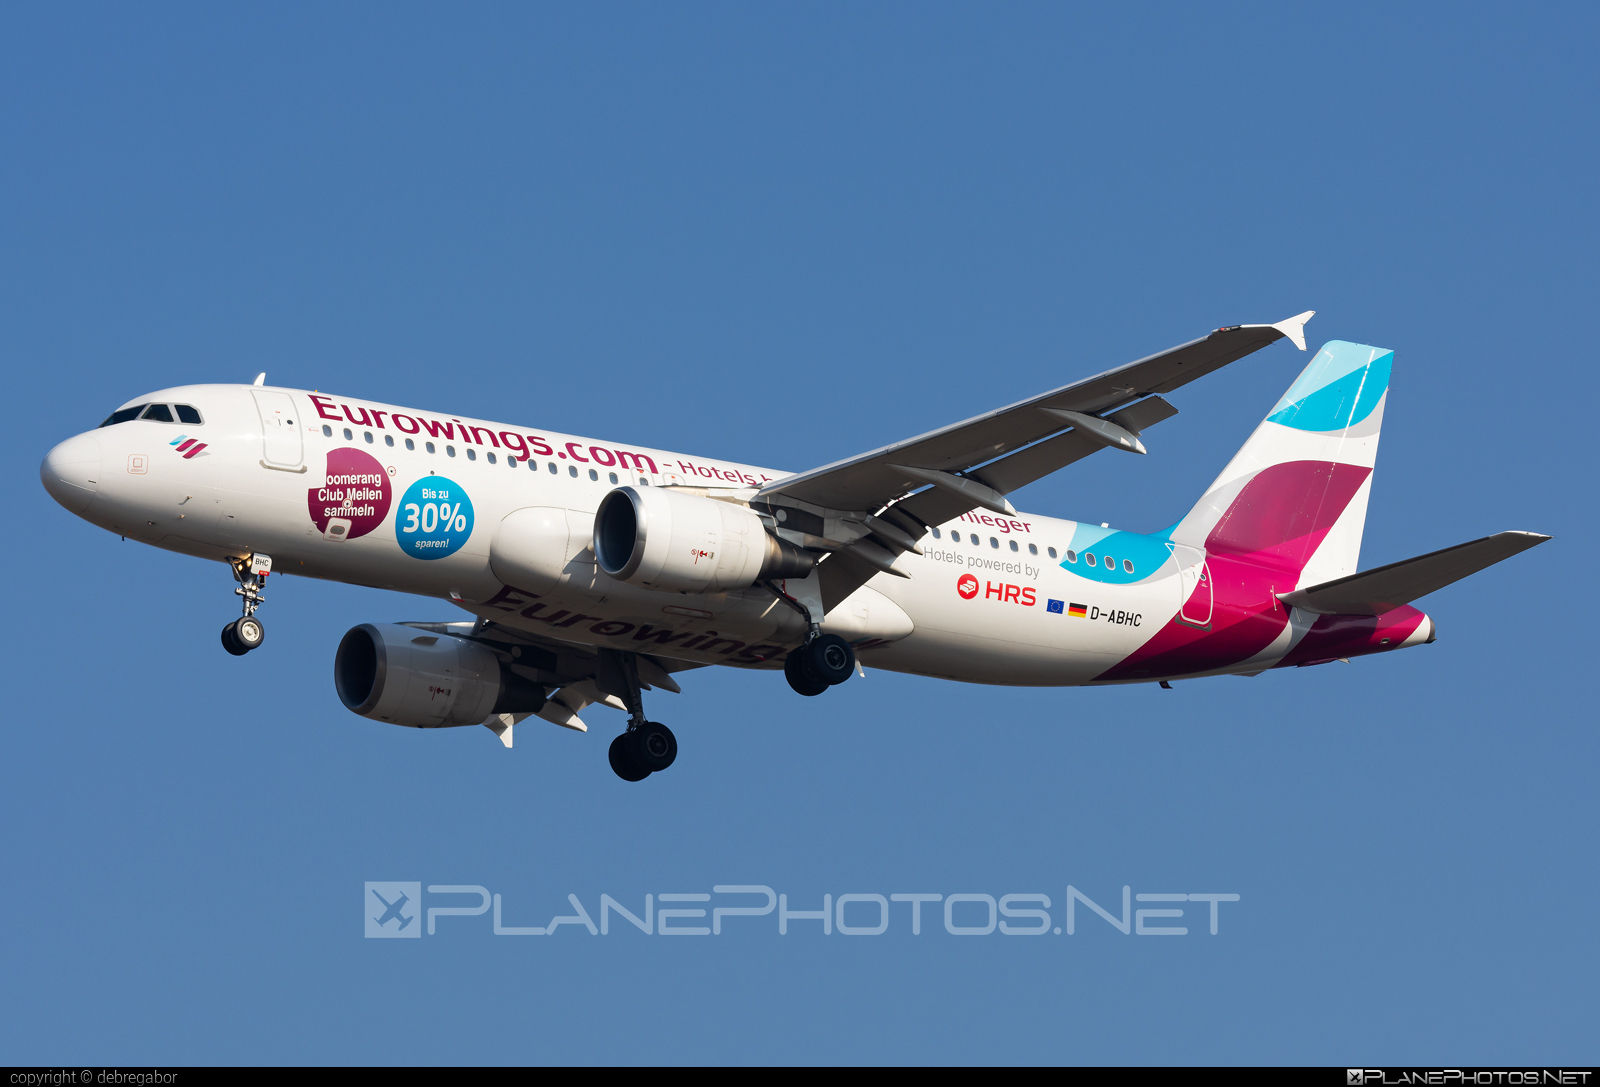 Airbus A320-214 - D-ABHC operated by Eurowings #a320 #a320family #airbus #airbus320 #eurowings